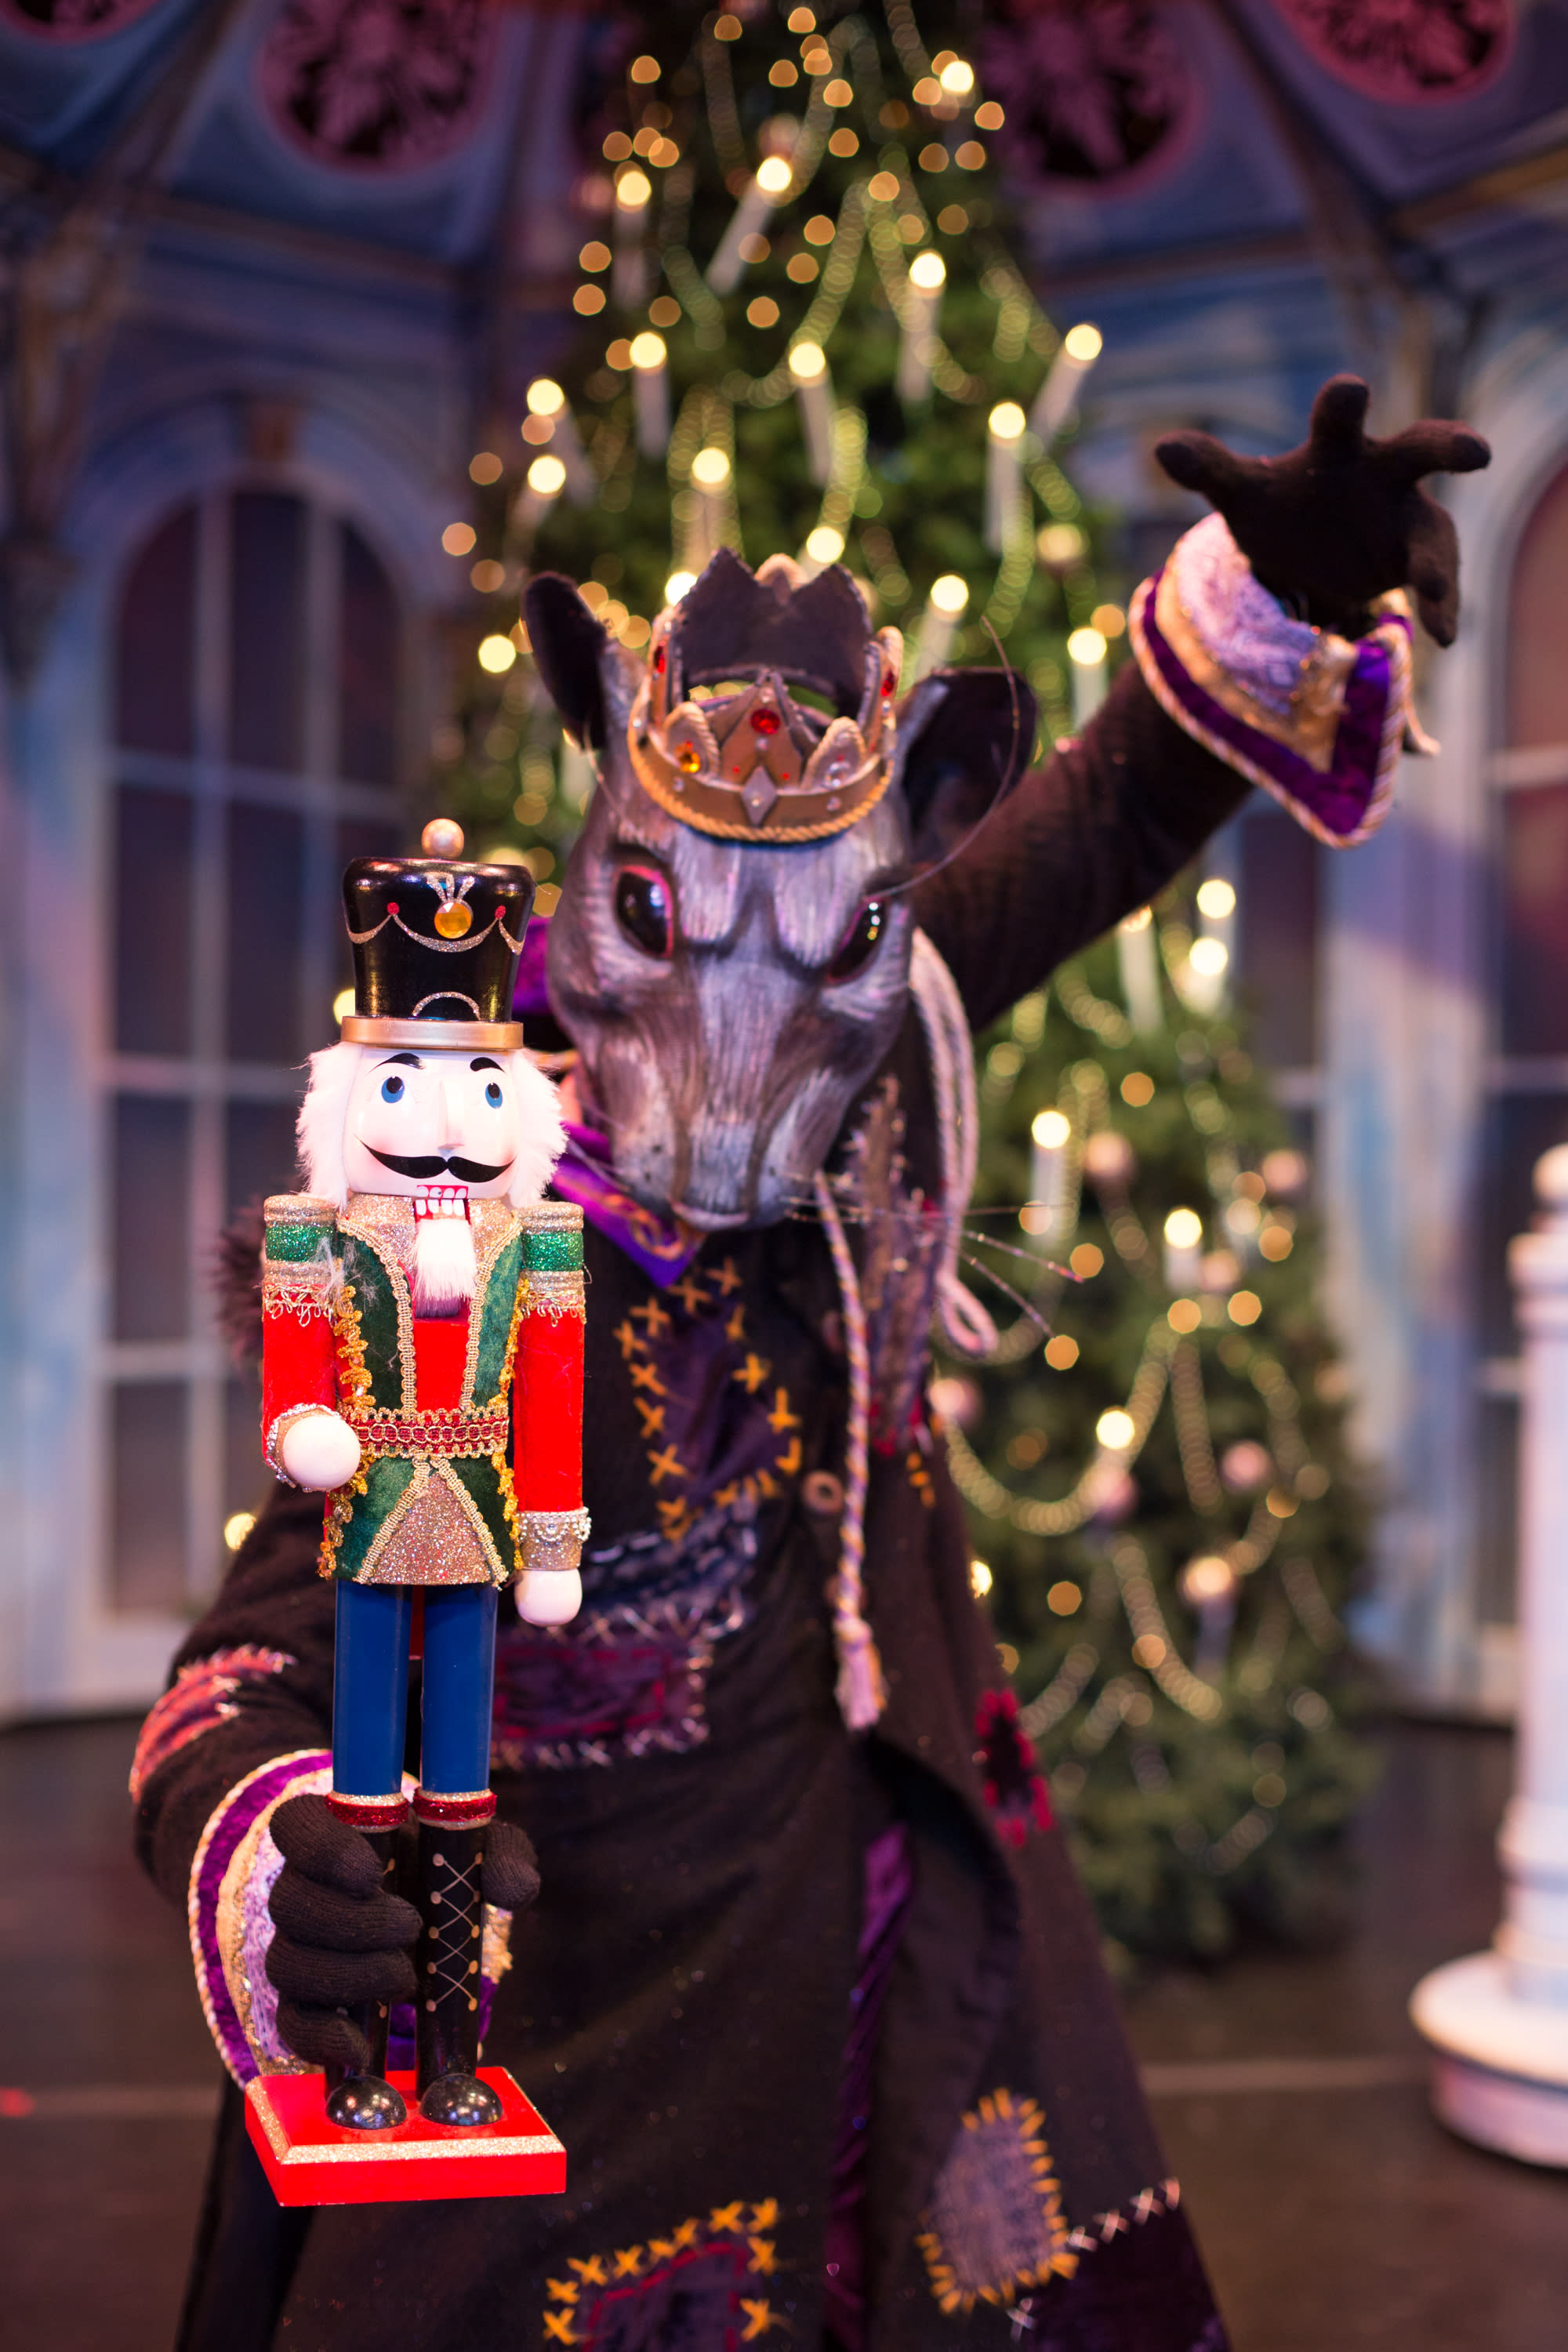 The King of the Rats — or as we might call him in Santa Fe, El Rey de Ratons — will never defeat the Brave Nutcracker